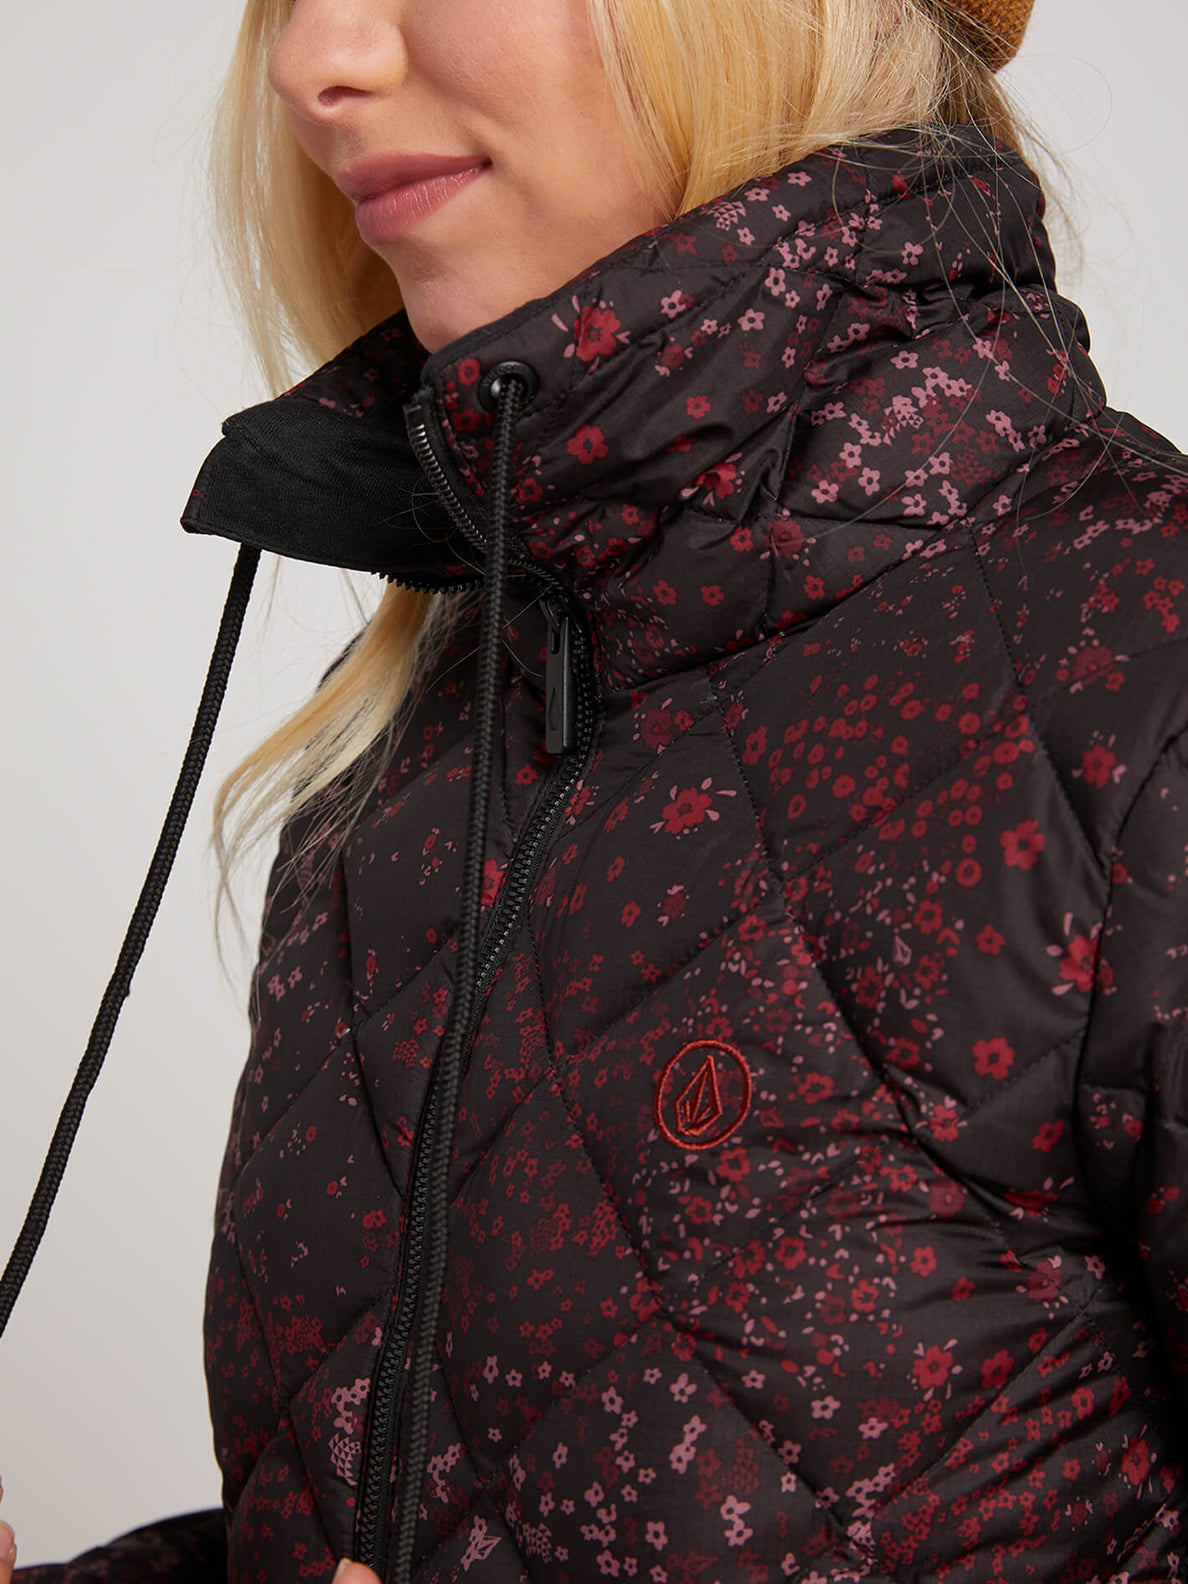 Skies Down Puff Jacket In Black Floral Print, Second Alternate View